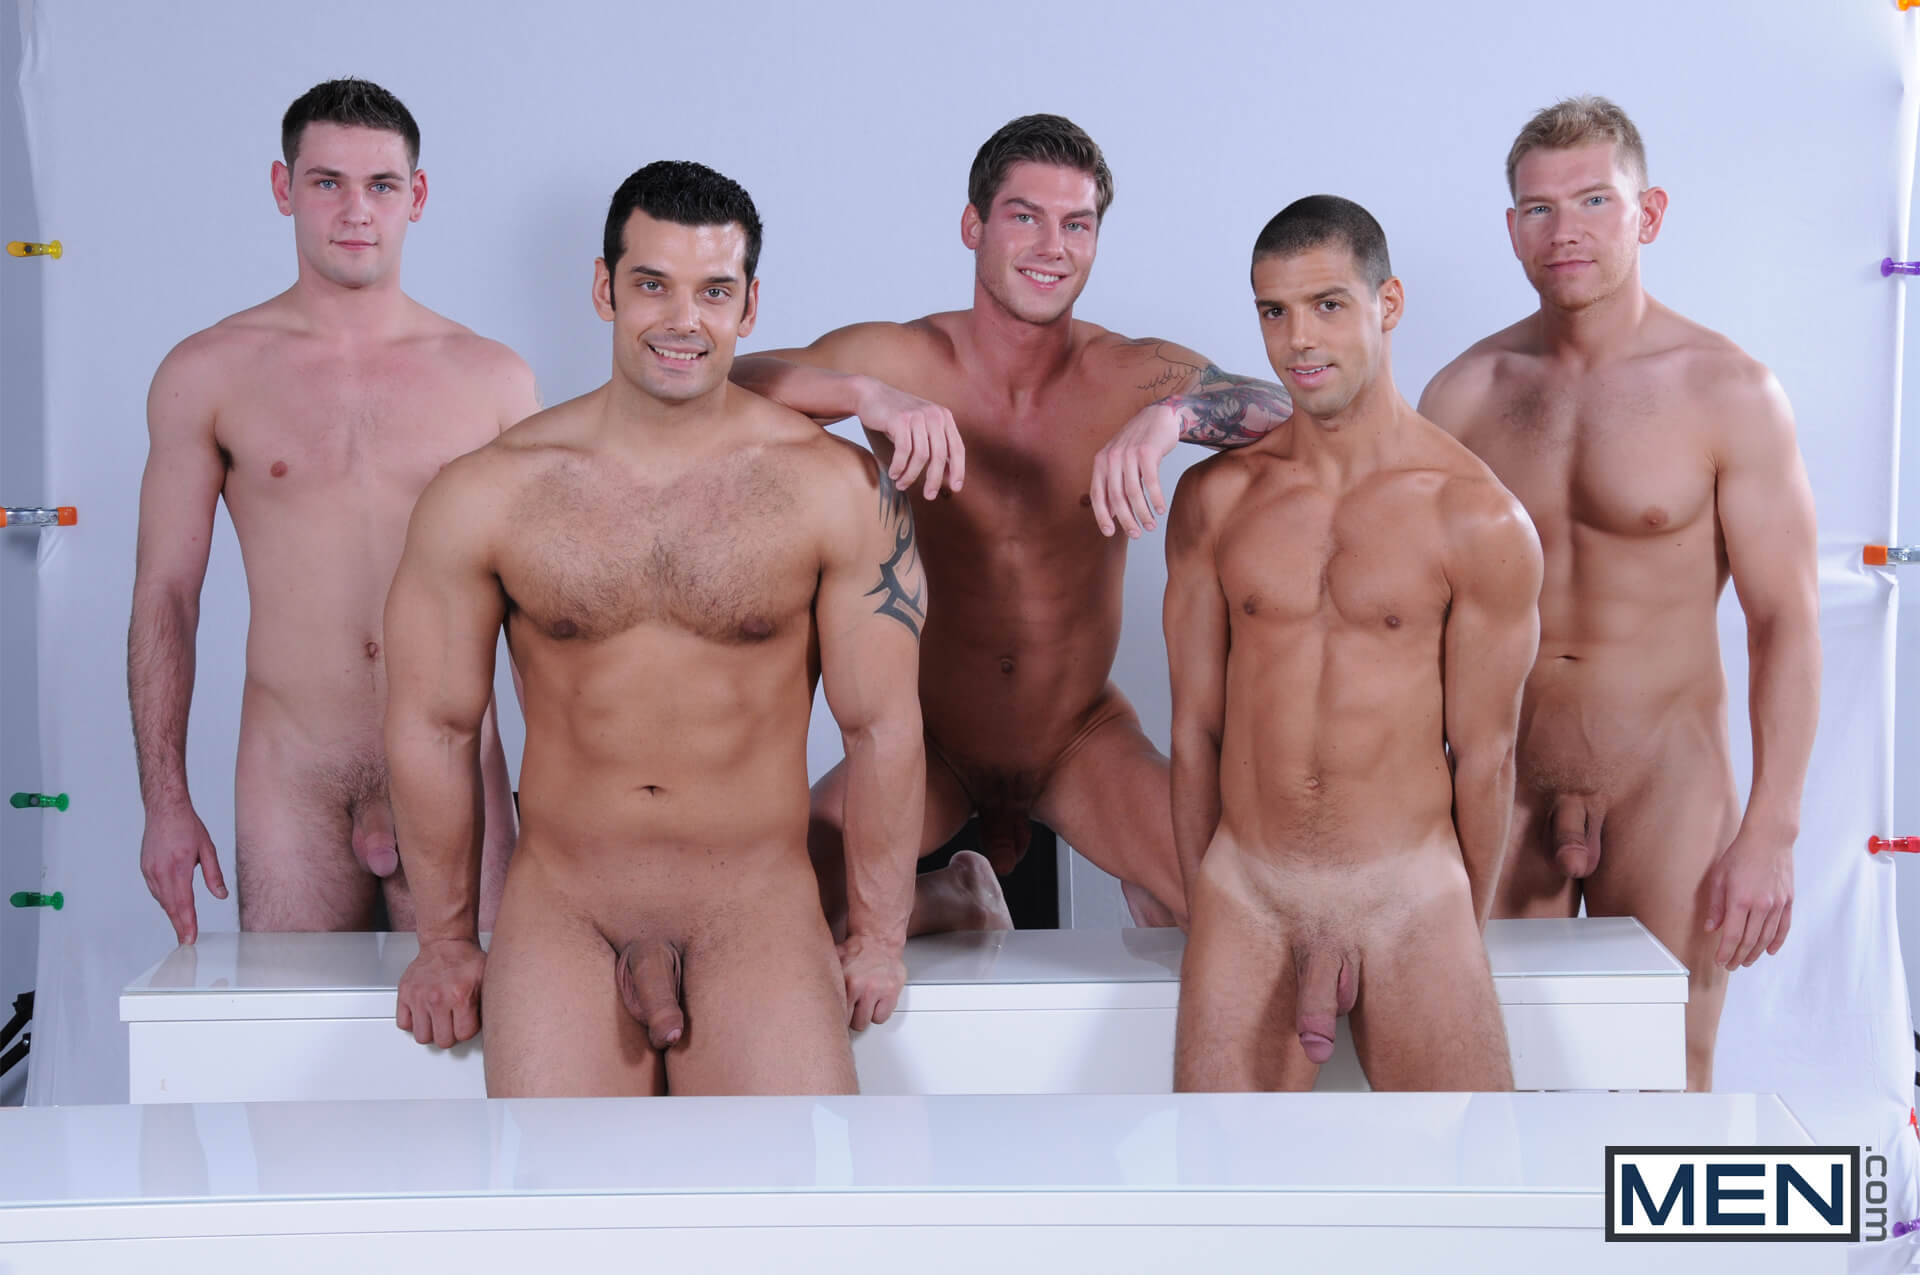 men jizz orgy the calendar shoot alex adams duncan black marcus ruhl tommy deluca vance crawford gay porn blog image 3